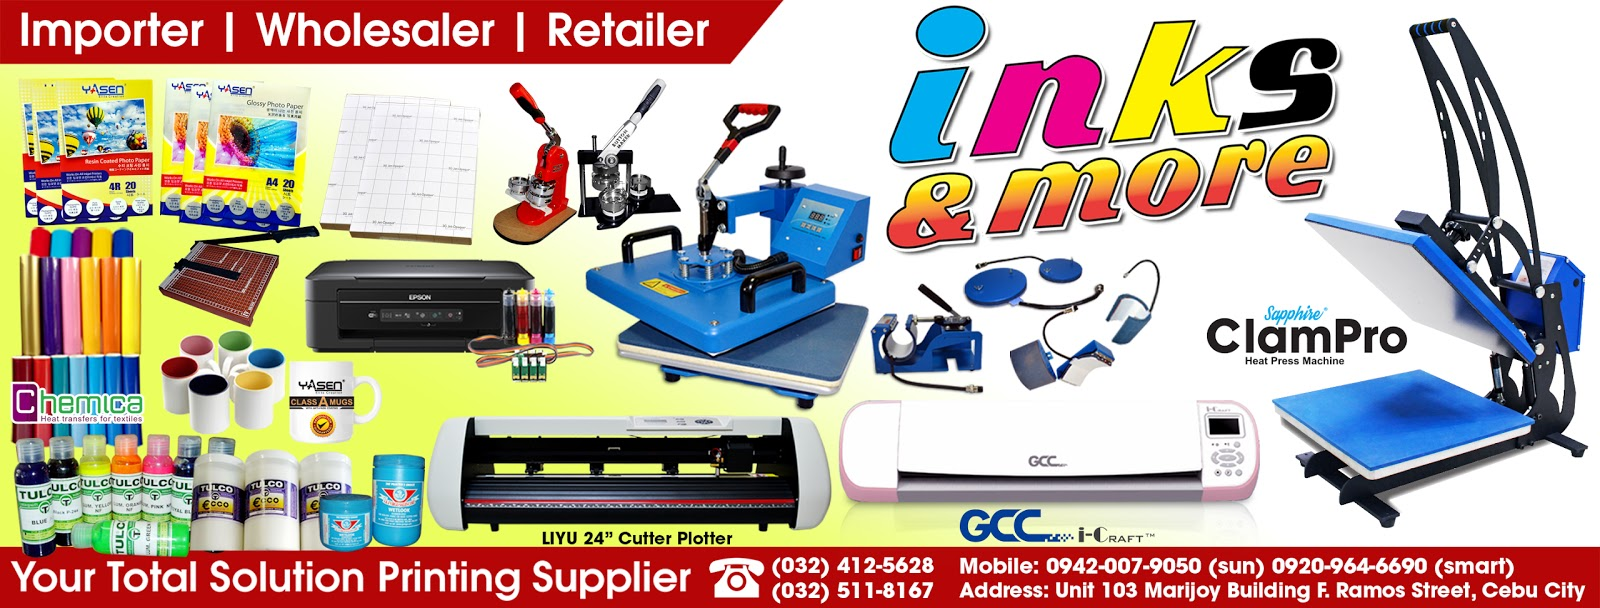 504a88a42 Supplier of T-shirt printing machine and consumables in Cebu City